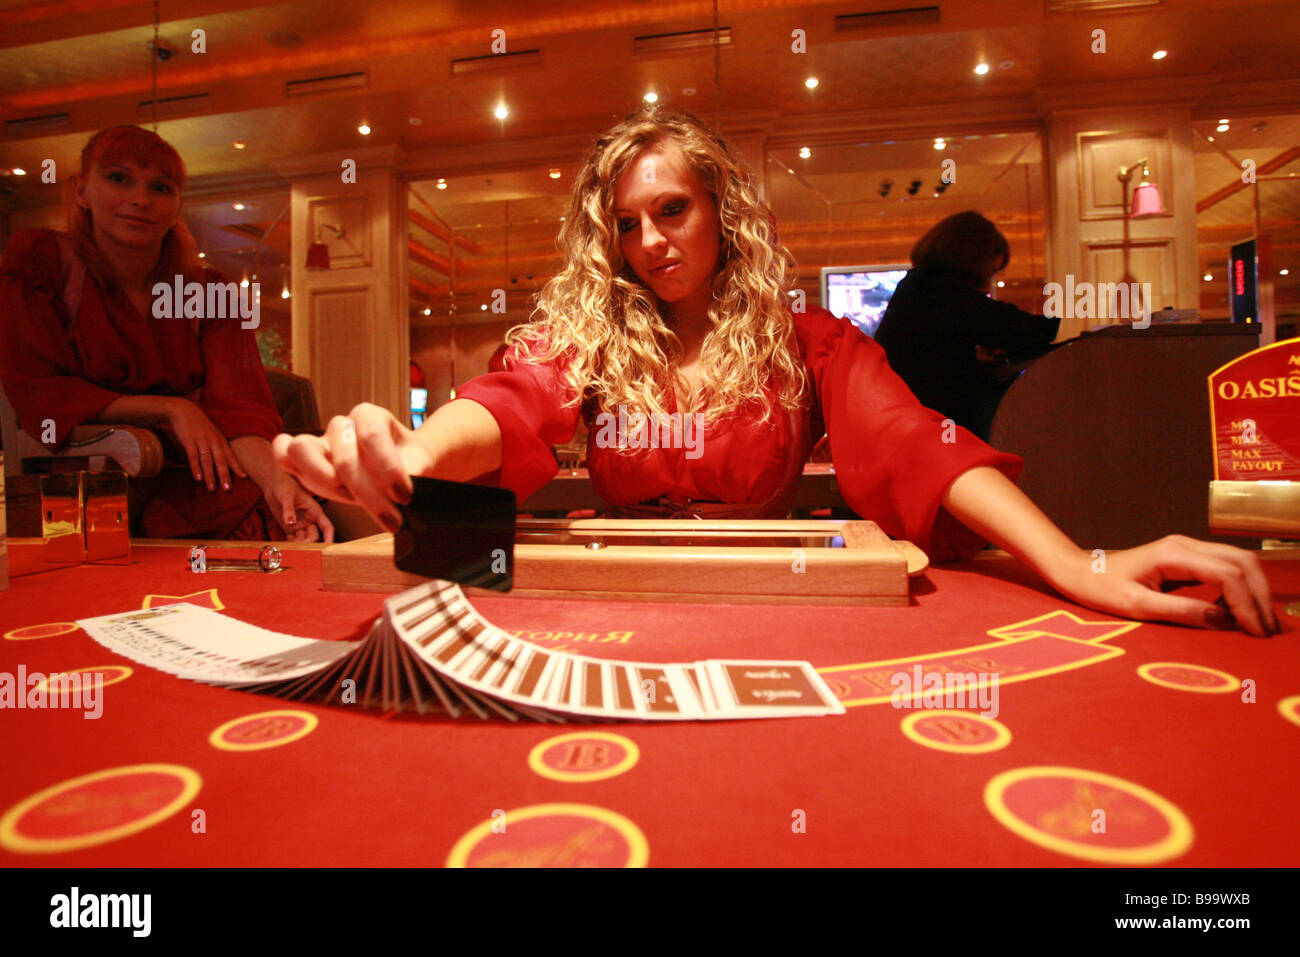 casino online for free